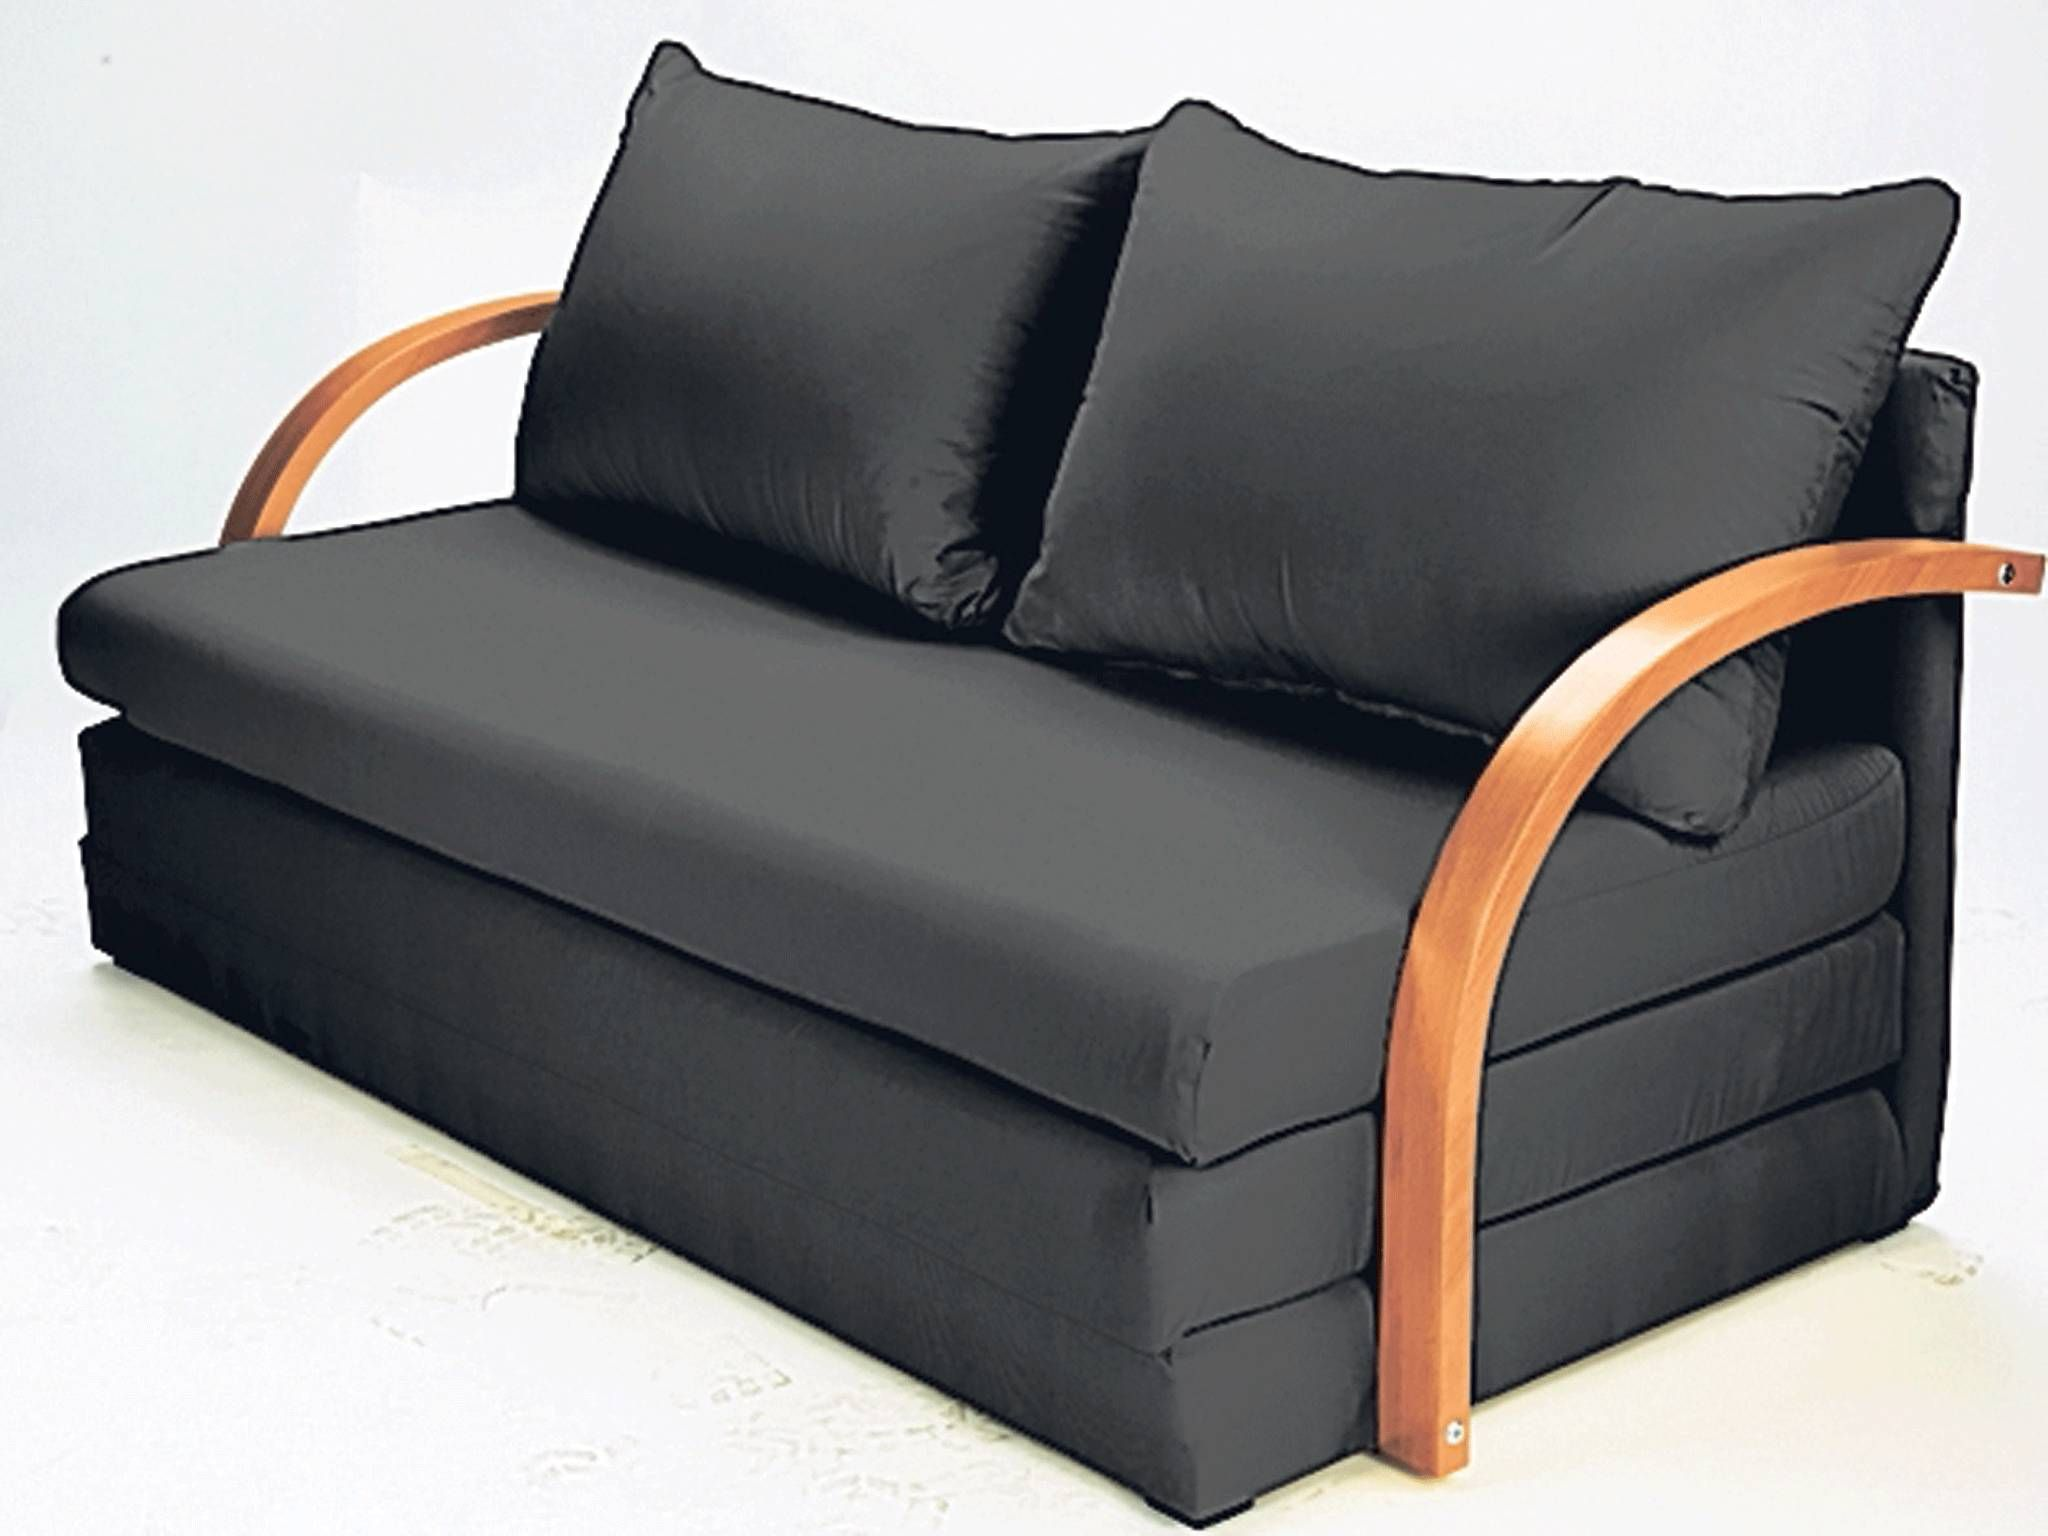 Best Beds For Your Back Bedroomcozy Best Beds For Your Back With Comfortable Padded .